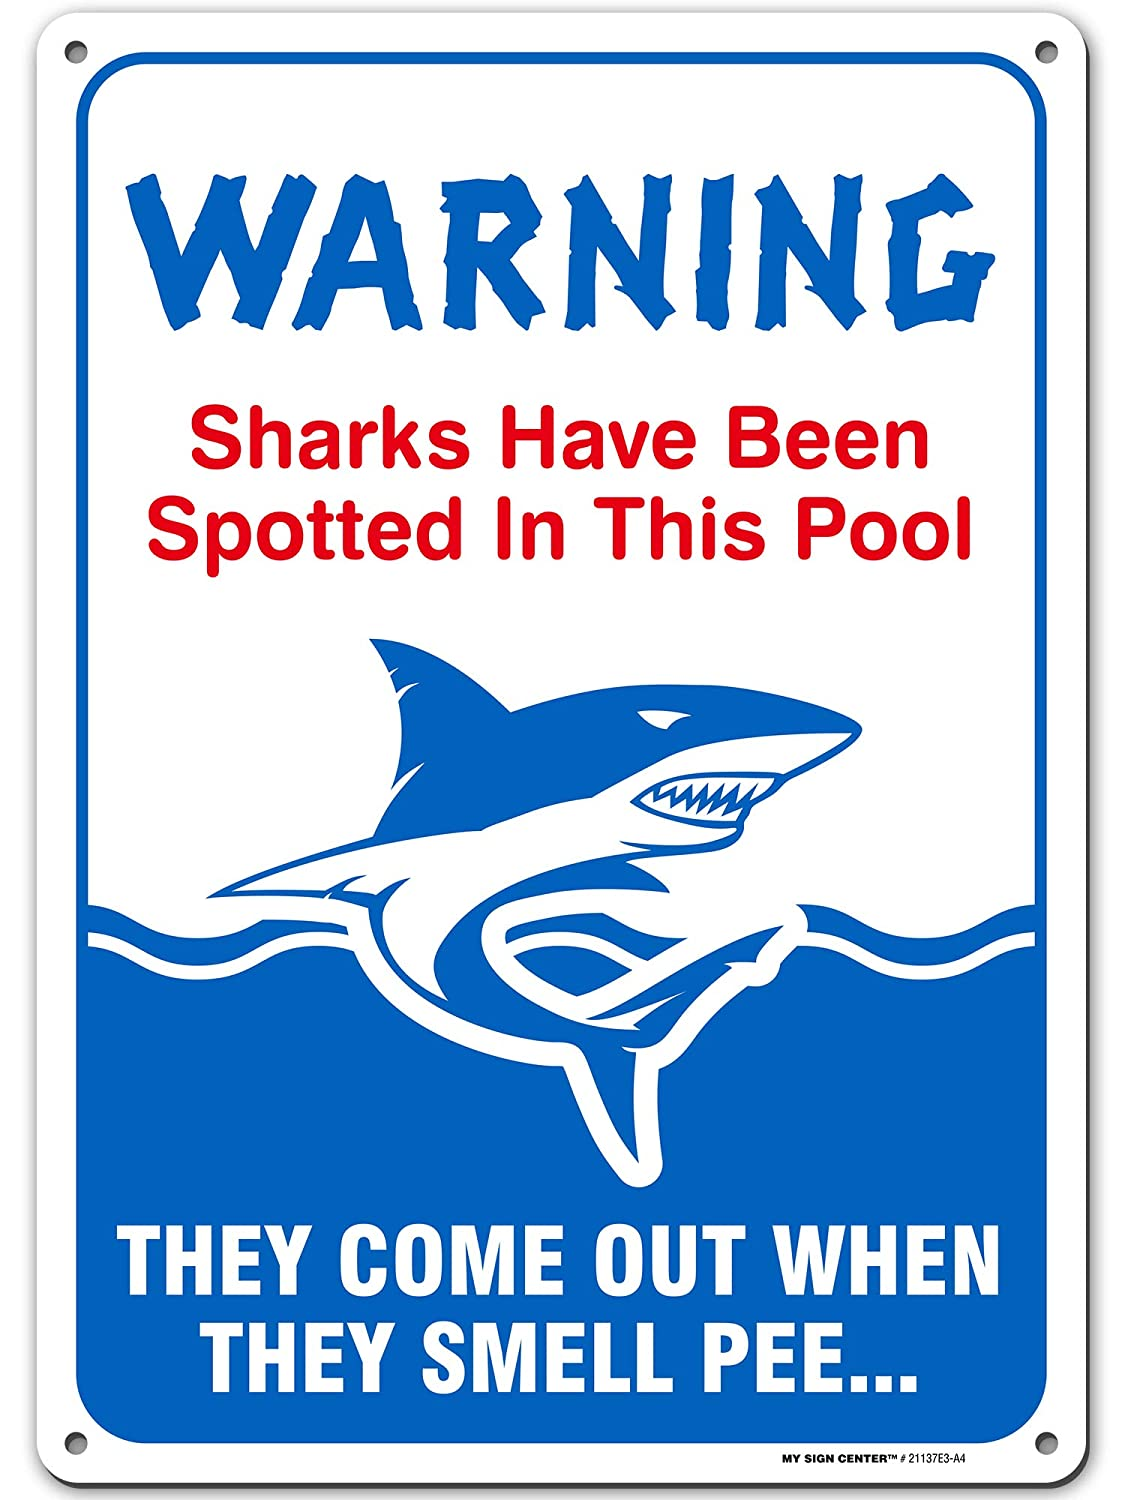 "Funny Swimming Pool Rules No Peeing Sign, Made Out of .040 Rust-Free Aluminum, Indoor/Outdoor Use, UV Protected and Fade-Resistant, 10"" x 14"", by My Sign Center"